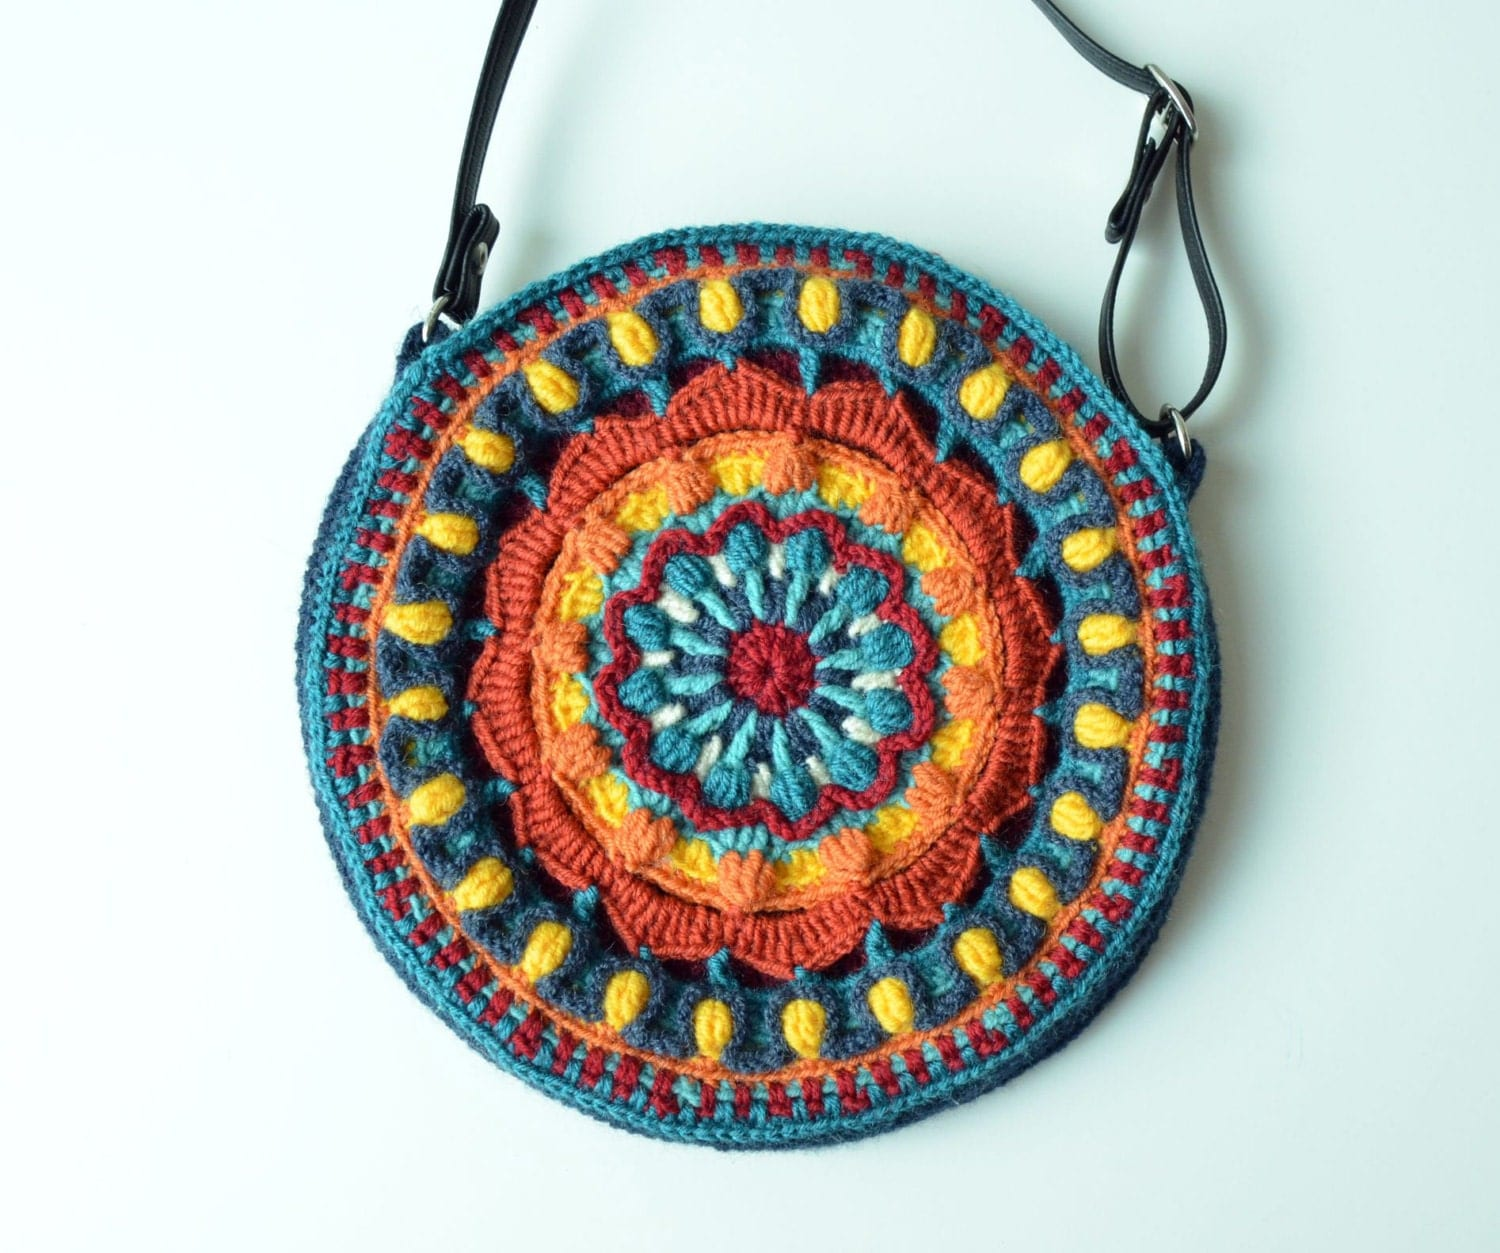 Crochet Bag Strap : Crocheted round bag mandala bag with strap by LillaBjornCrochet